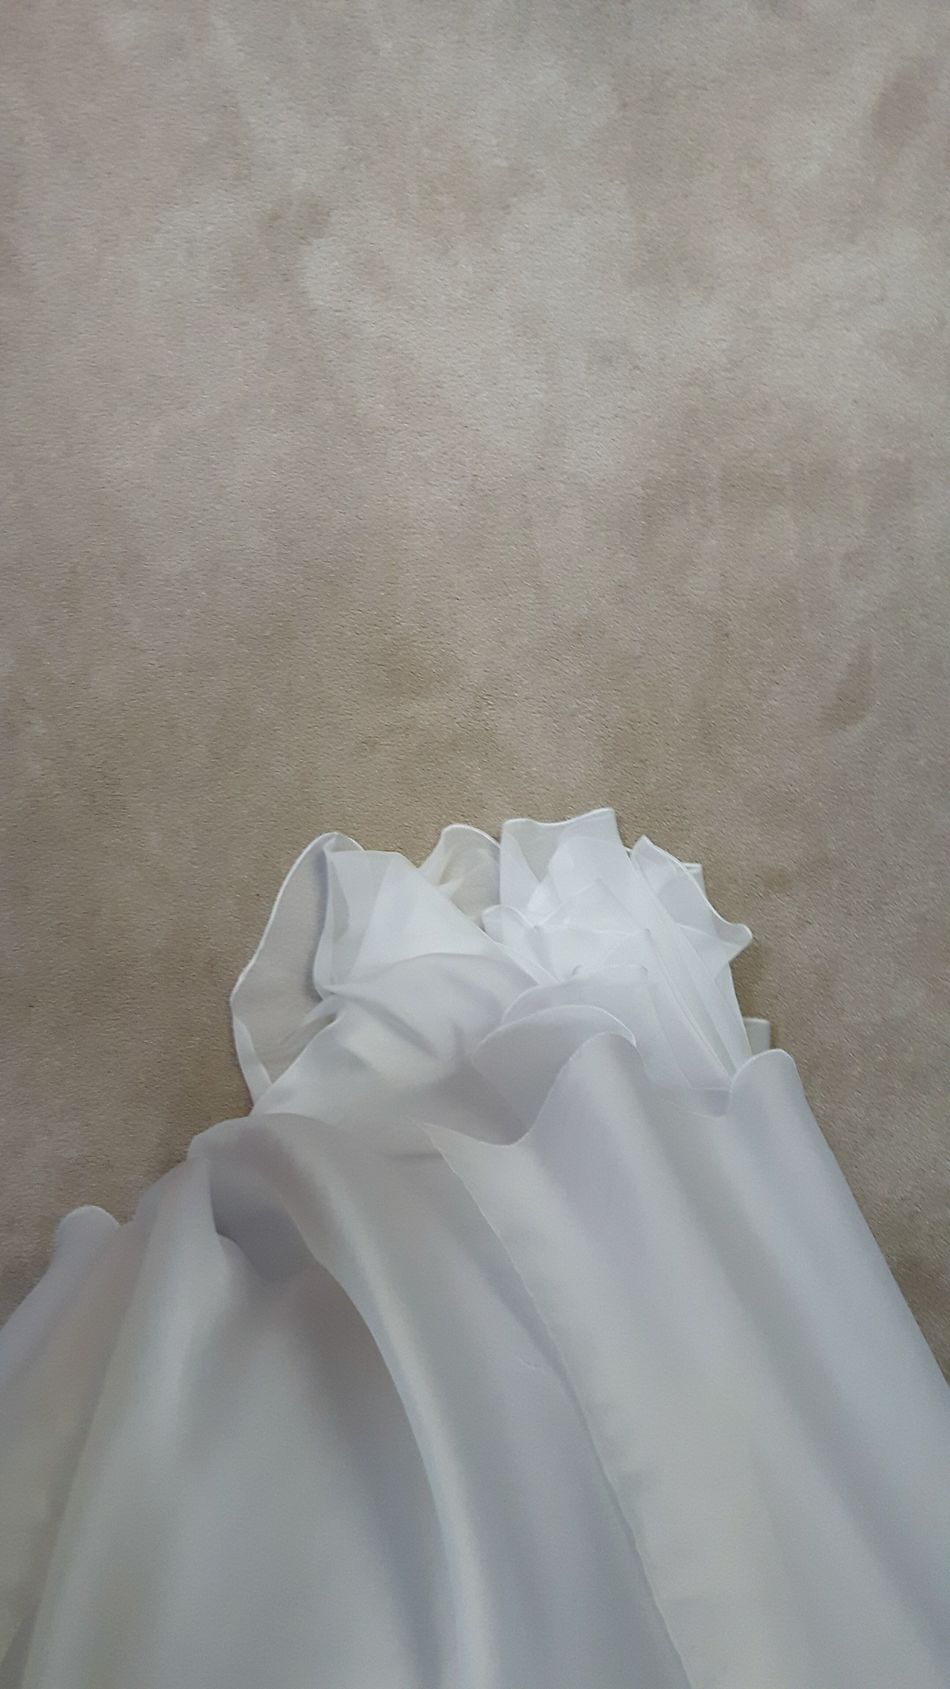 I can be either very manly or a total girly girl and this dress turned me into the latter. White Dress Pretty Soft Silky Satin Prom Gradation Beautiful Flowing Falling Coloroflife Newbeginnings Change Life Smile Happy Girls Girly Vibes Goodvibes Ecstatic Ecstasy